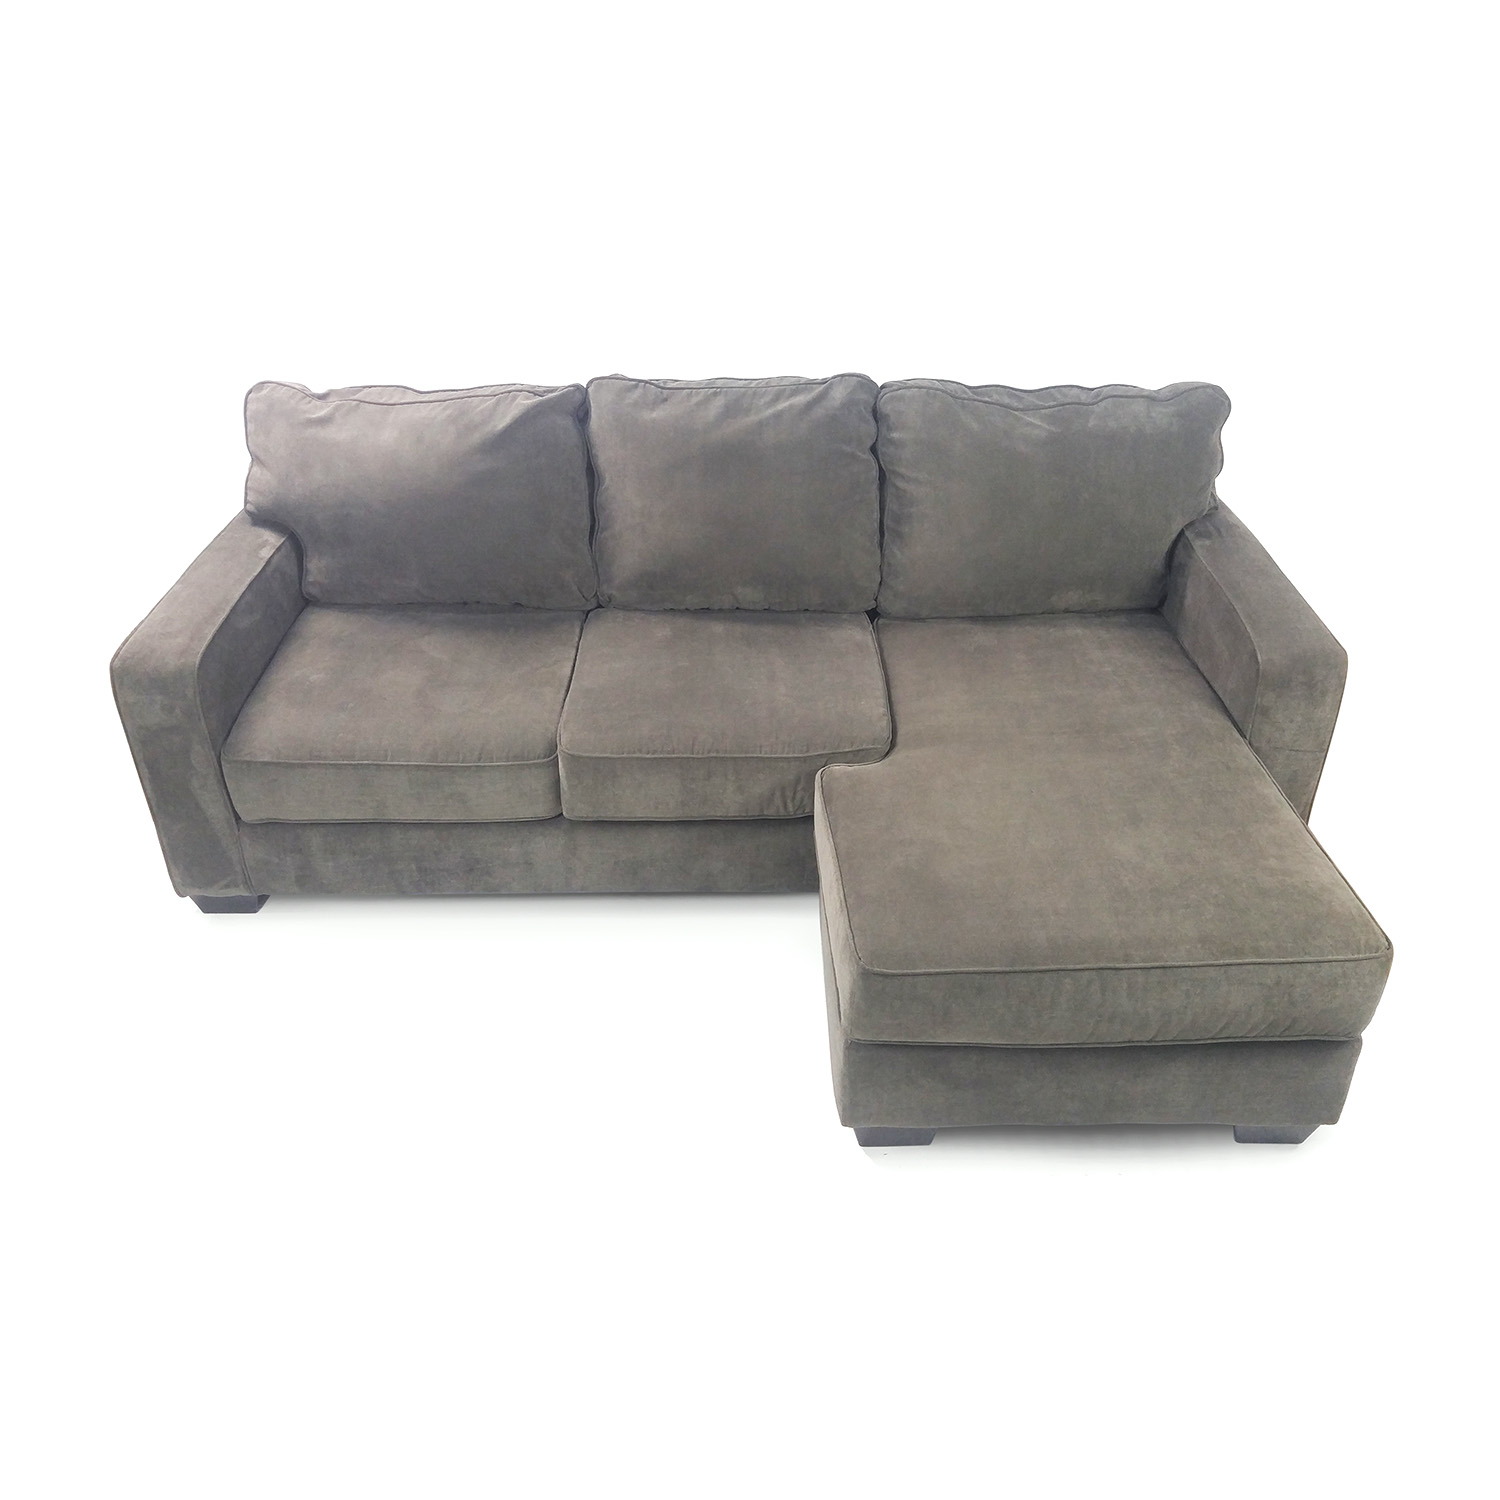 Hodan sofa chaise ashley furniture hodan marble sofa for Ashley furniture chaise lounge